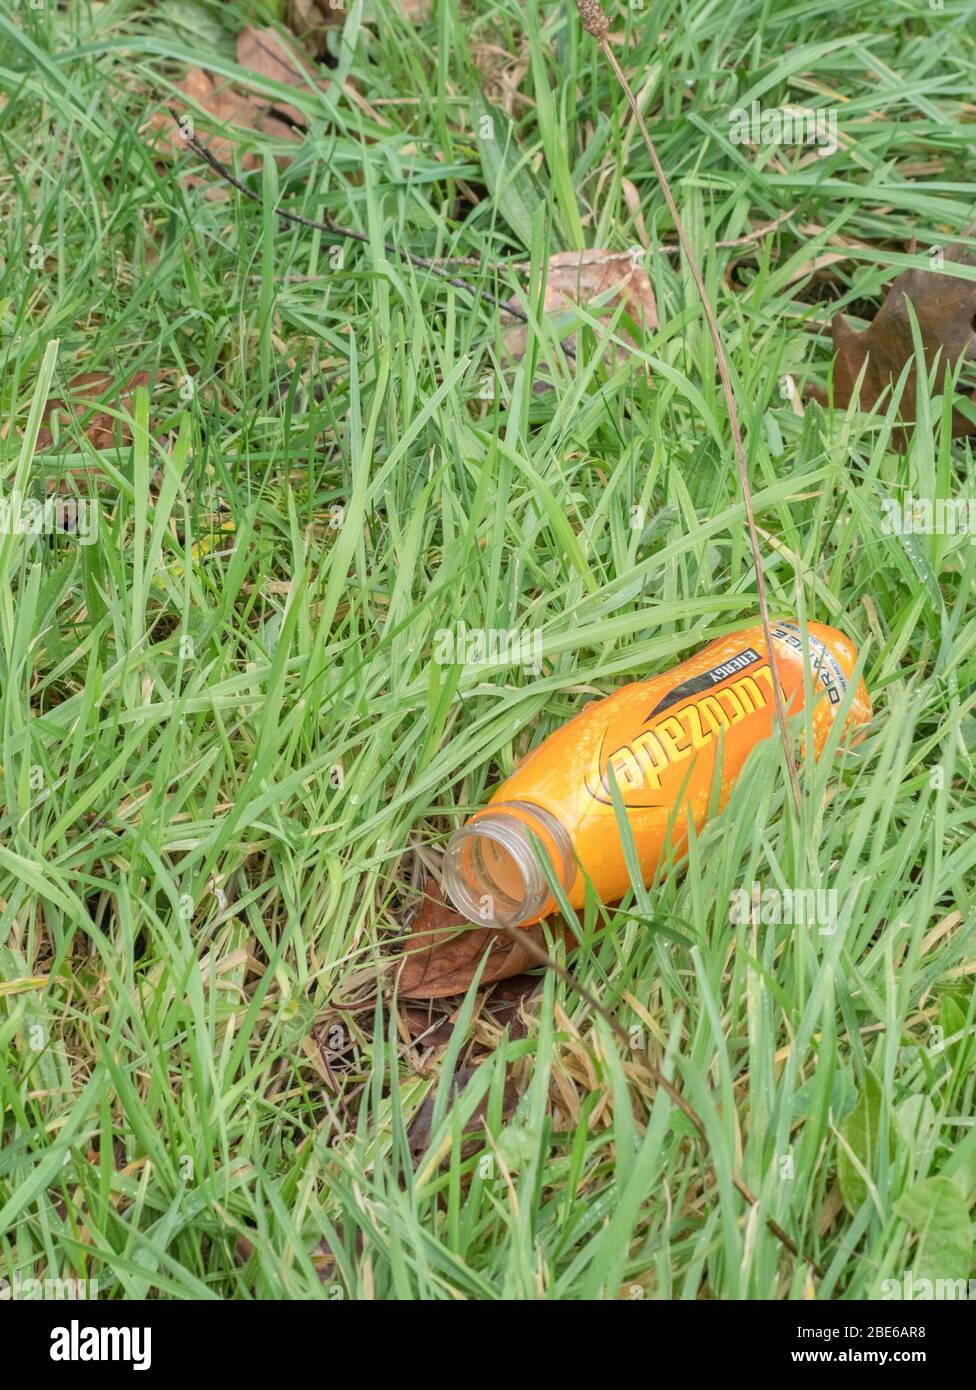 Empty Lucozade bottle in hedgerow long grass. Example of plastic pollution in the countryside, plastic single use rubbish, plastic litter. Stock Photo